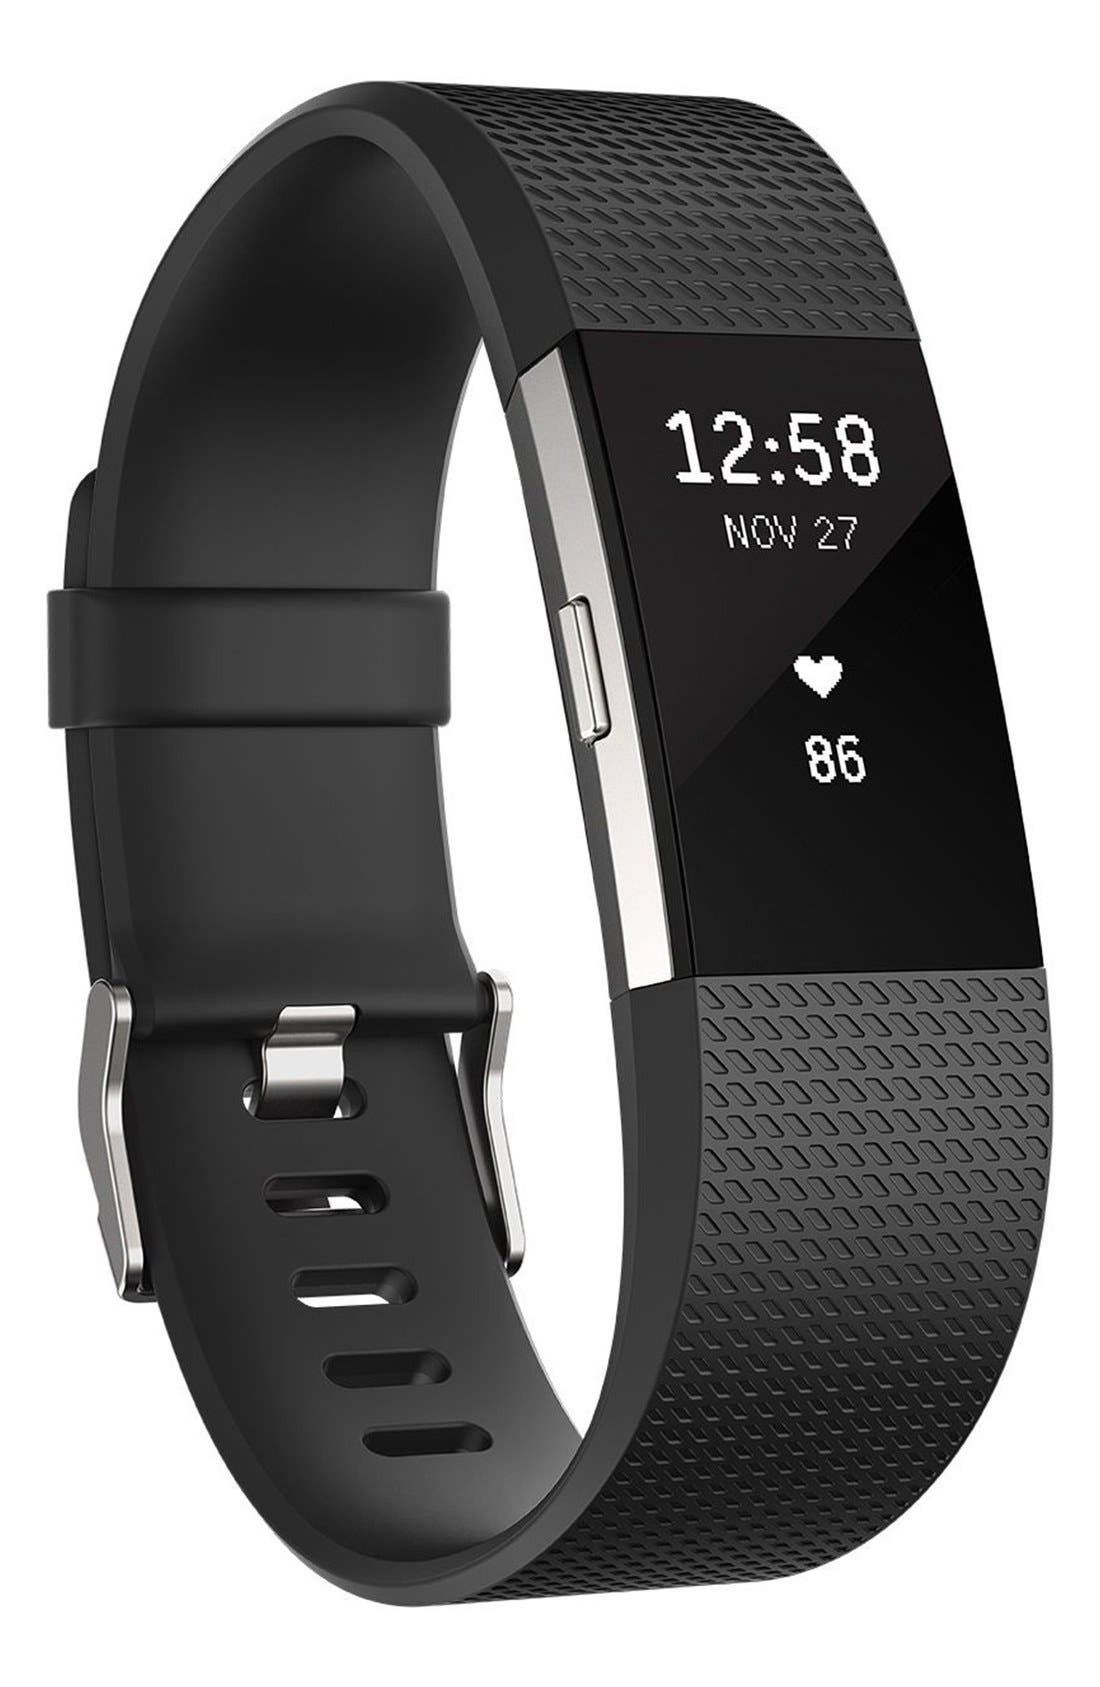 Fitbit 'Charge 2' Wireless Activity & Heart Rate Tracker